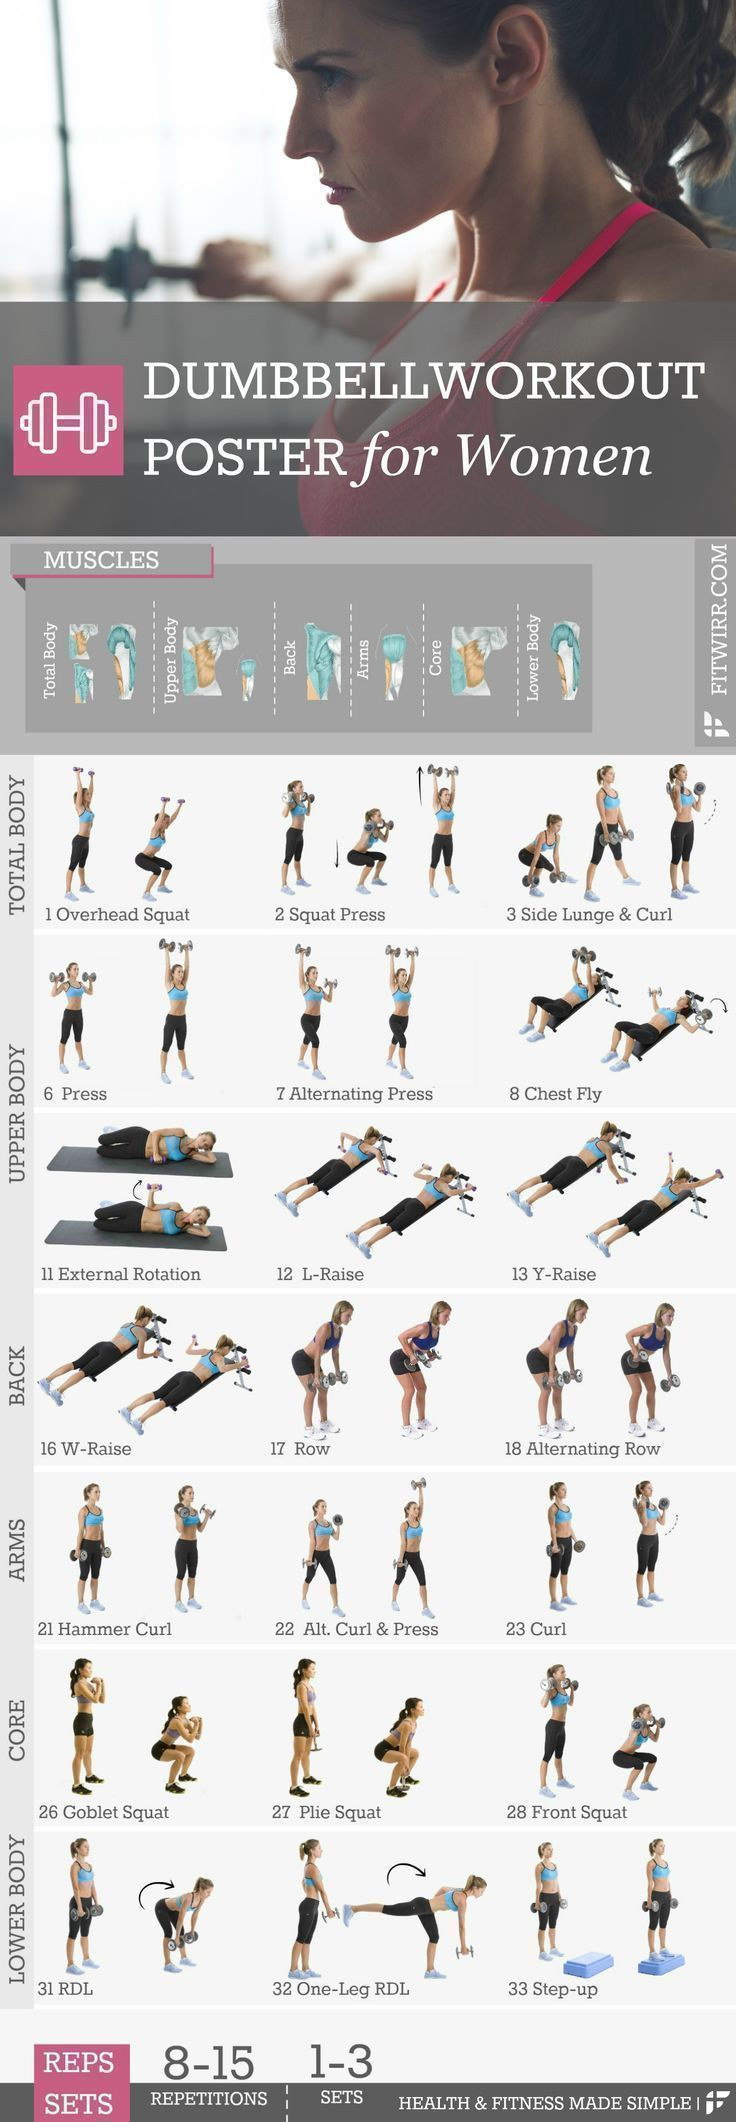 """Are you missing key exercises in your routine? And is that keeping you from reaching your goal? Our """"Dumbbell Workout Poster"""" will show you the absolute best dumbbell exercises to build the body you w #lose10poundsin2week #DietMotivation #DietMenu #WeekDiet"""